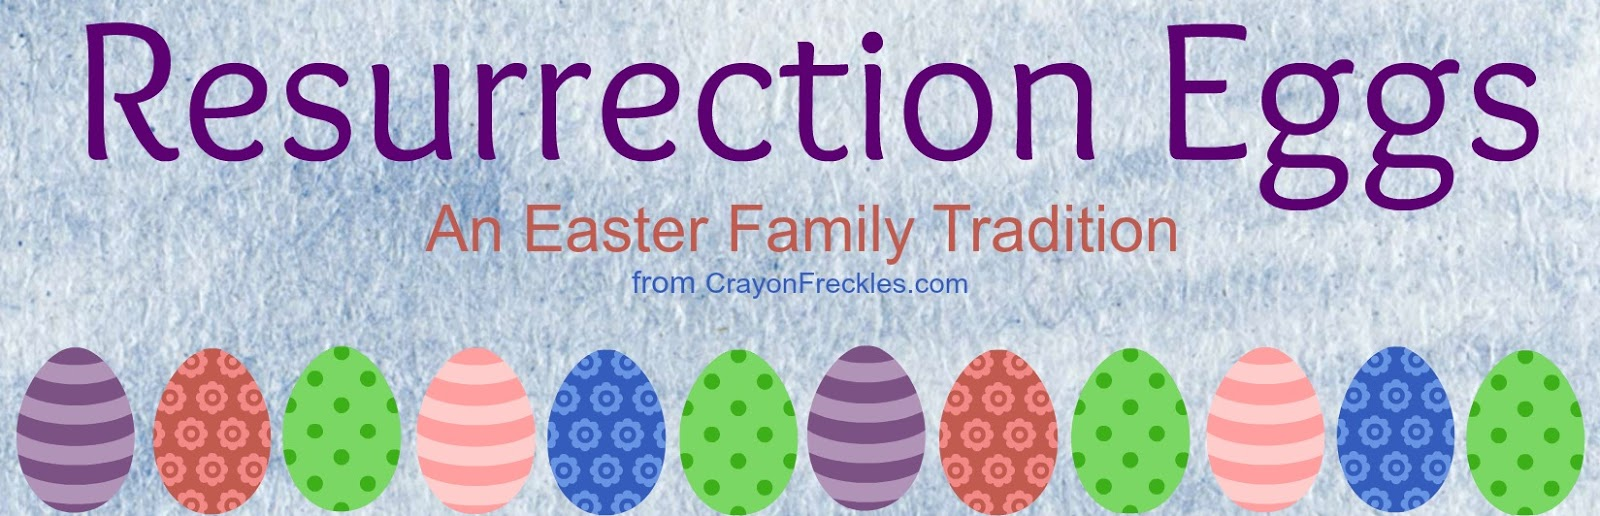 image regarding Resurrection Egg Story Printable identified as Crayon Freckles: Resurrection Eggs: The Easter Tale for